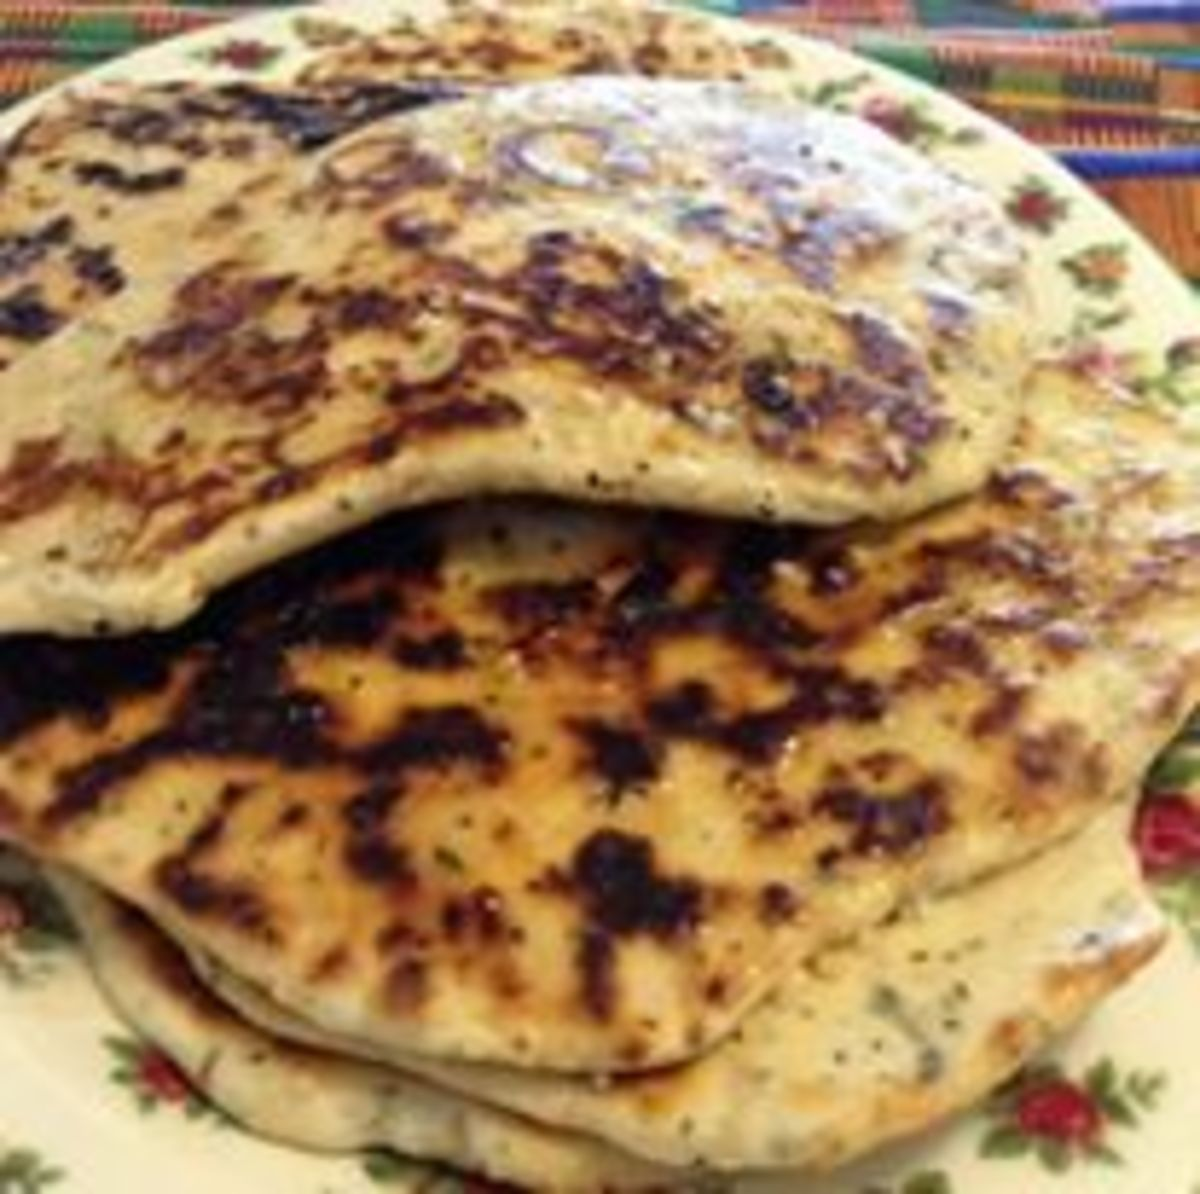 Naan with basil, oregano, garlic and other spices made directly into the dough.